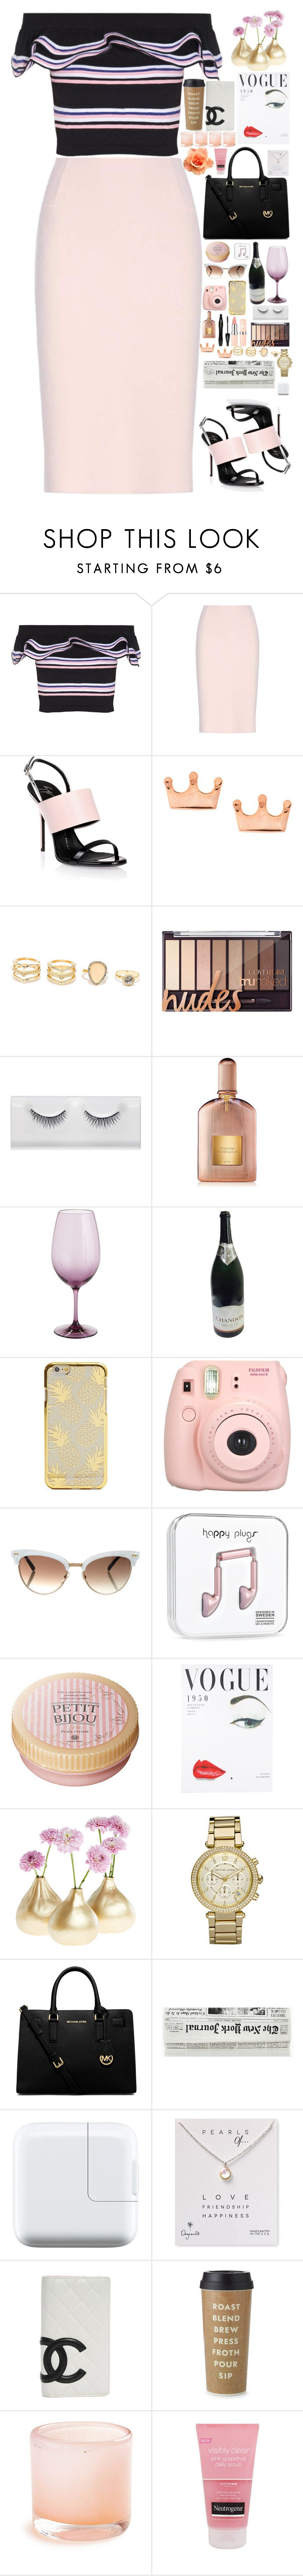 """Untitled #2852"" by nikkimarie-1123 ❤ liked on Polyvore featuring MSGM, Oscar de la Renta, Giuseppe Zanotti, LULUS, Lancôme, Tom Ford, Pier 1 Imports, Fujifilm, Gucci and Michael Kors"